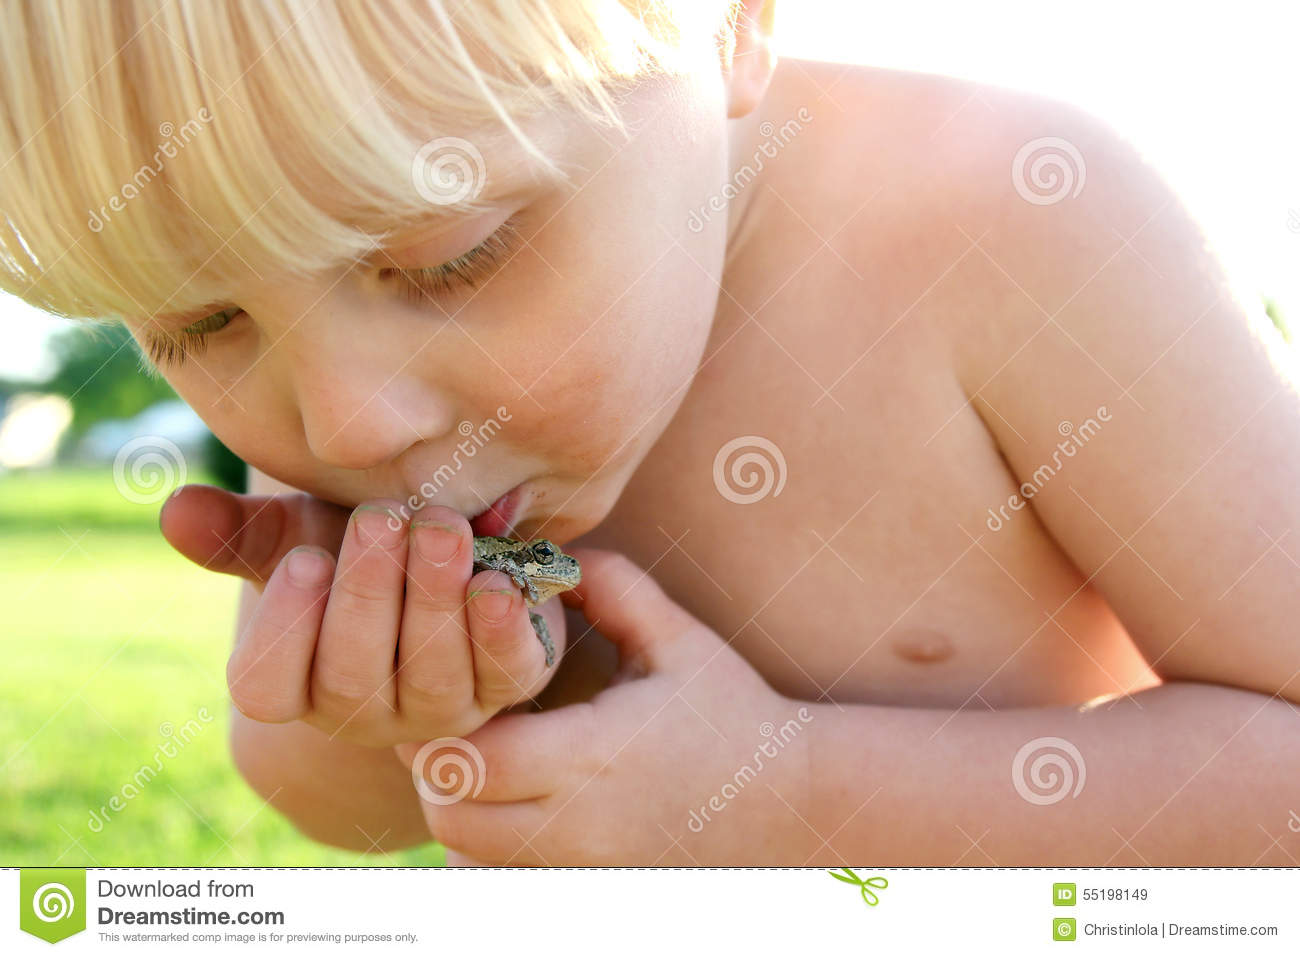 Dirty Toddler Playing Outside Kissing Frog